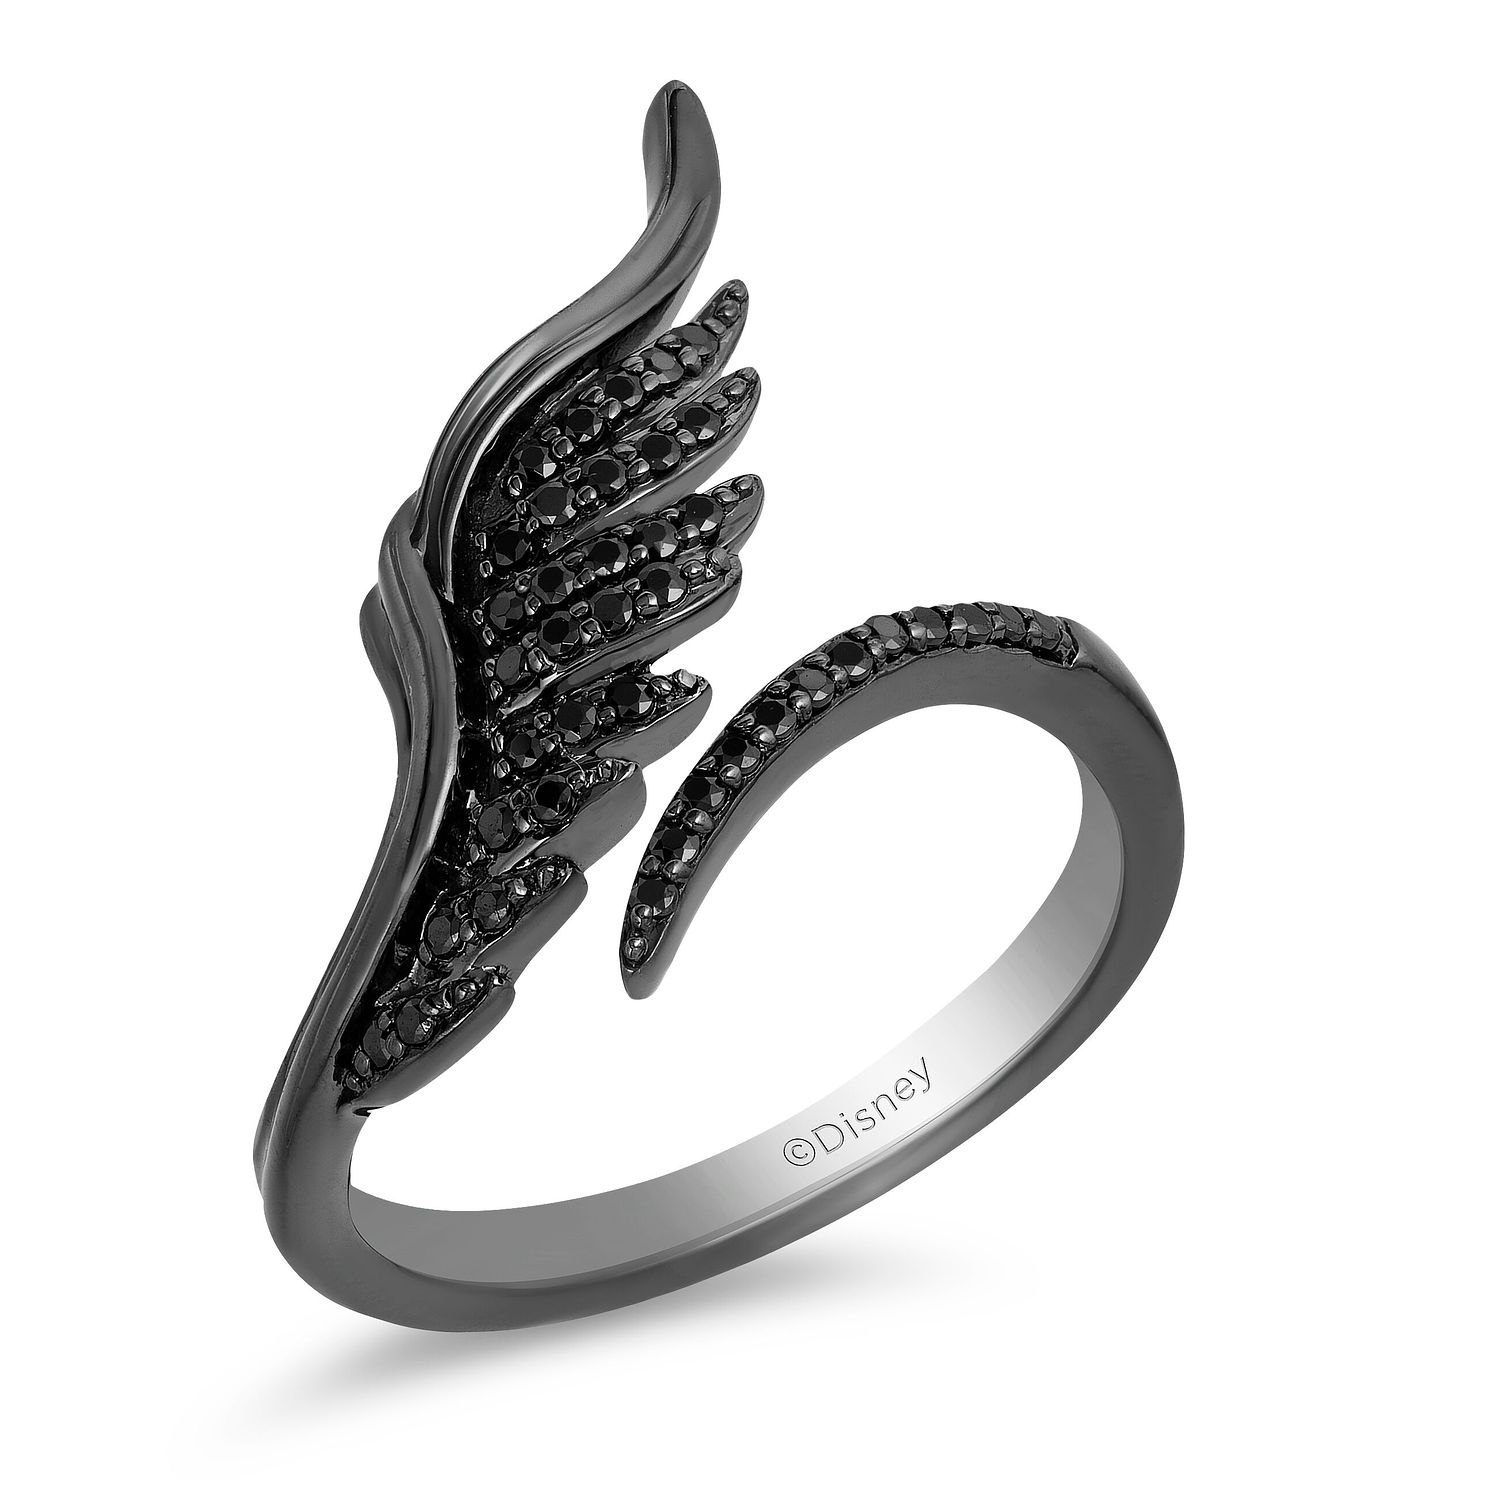 Enchanted Disney Villains Diamond Maleficent Ring - Product number 5067731